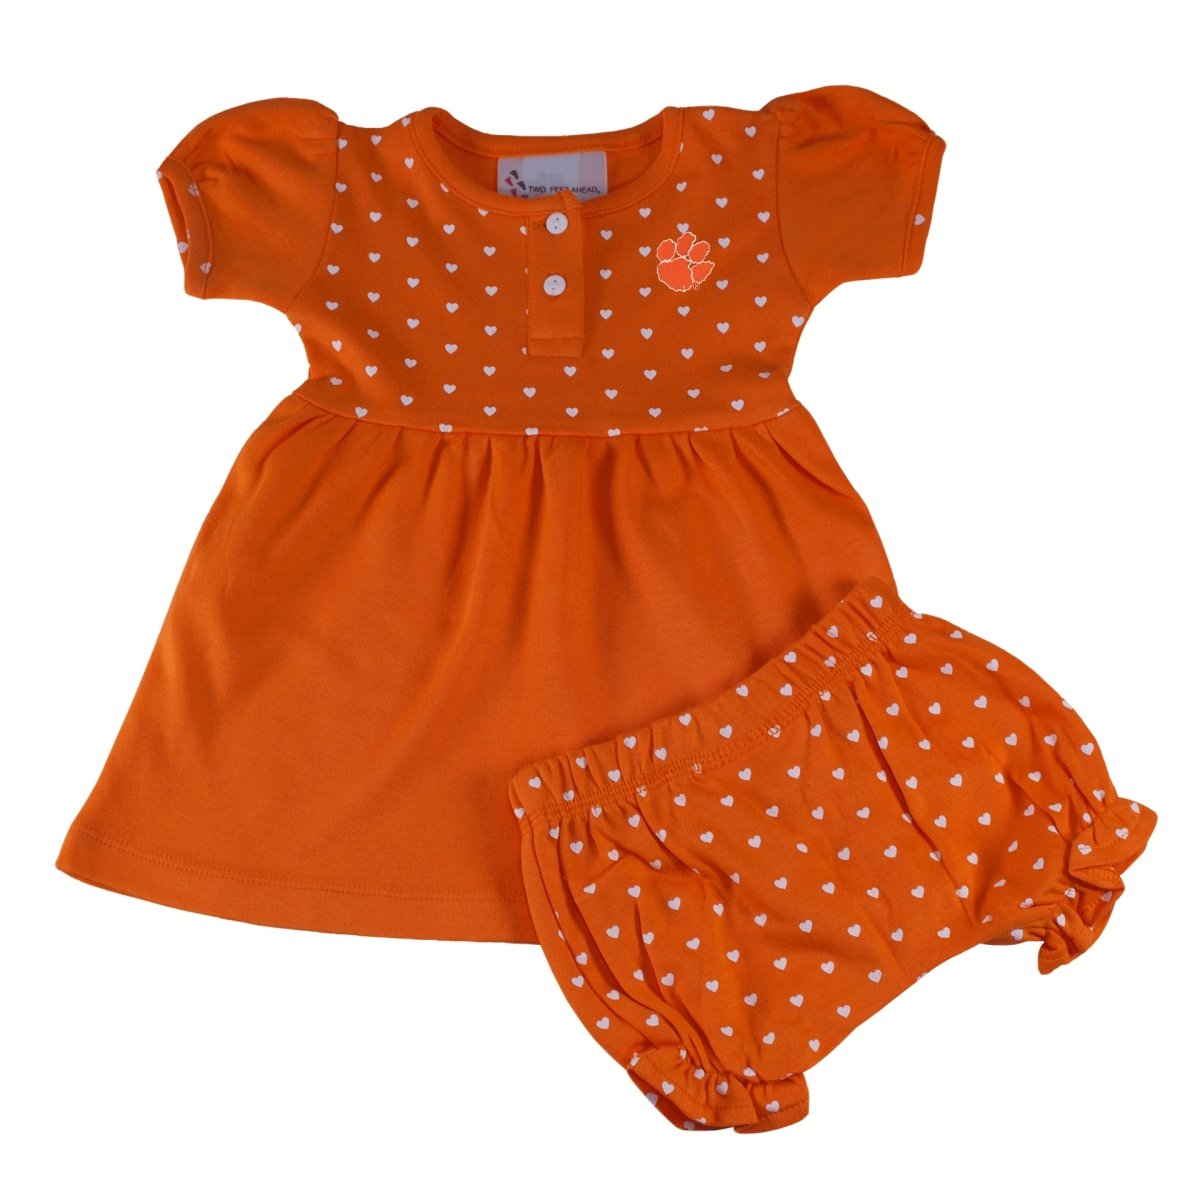 Two Feet Ahead Clemson Tigers Heart Dress With Bloomers - Mr. Knickerbocker